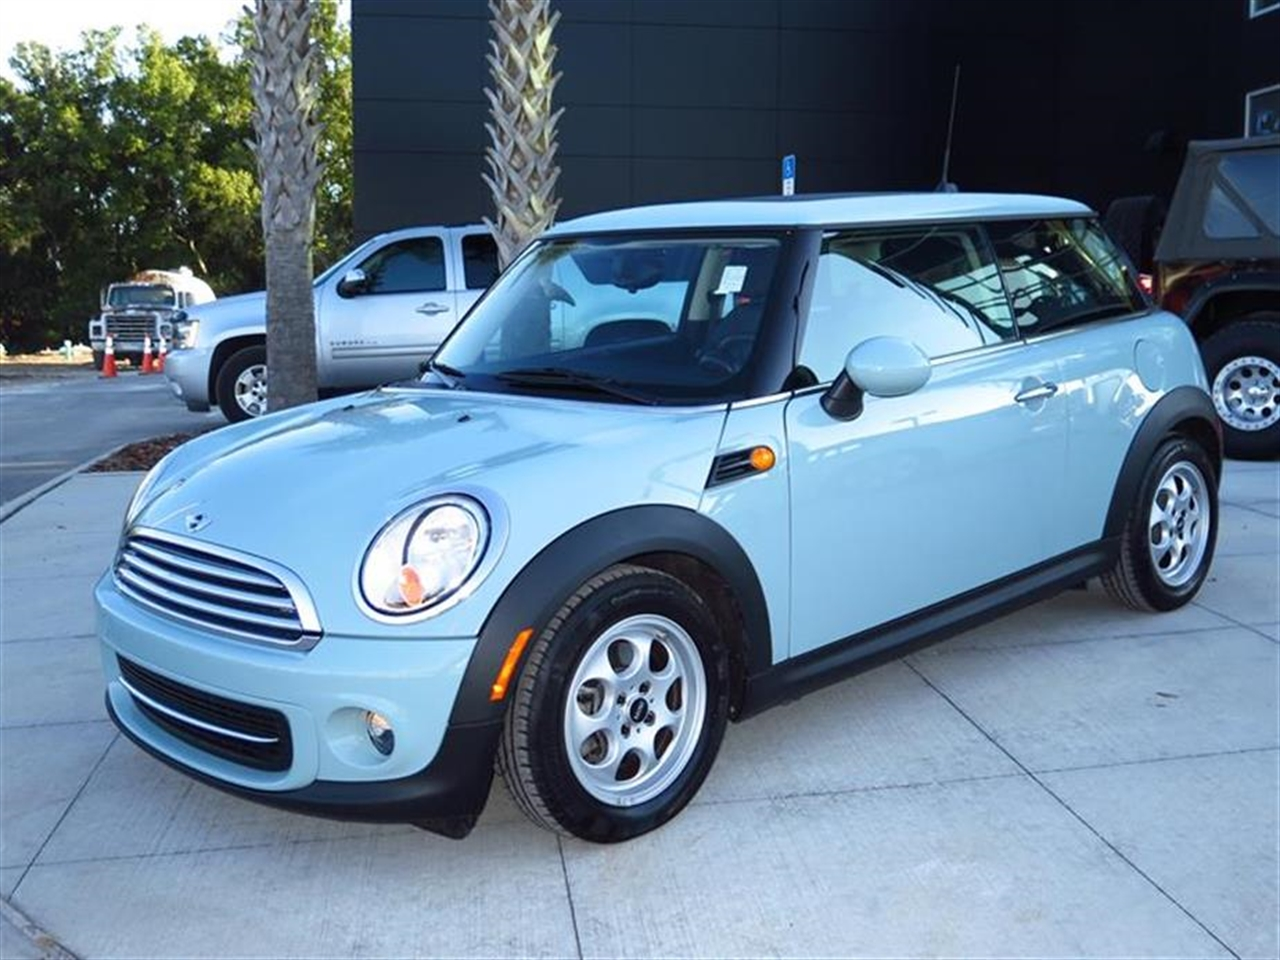 2012 MINI COOPER HARDTOP 2dr Cpe 13015 miles 1 rear cup holder 12V auxiliary pwr outlet in cock